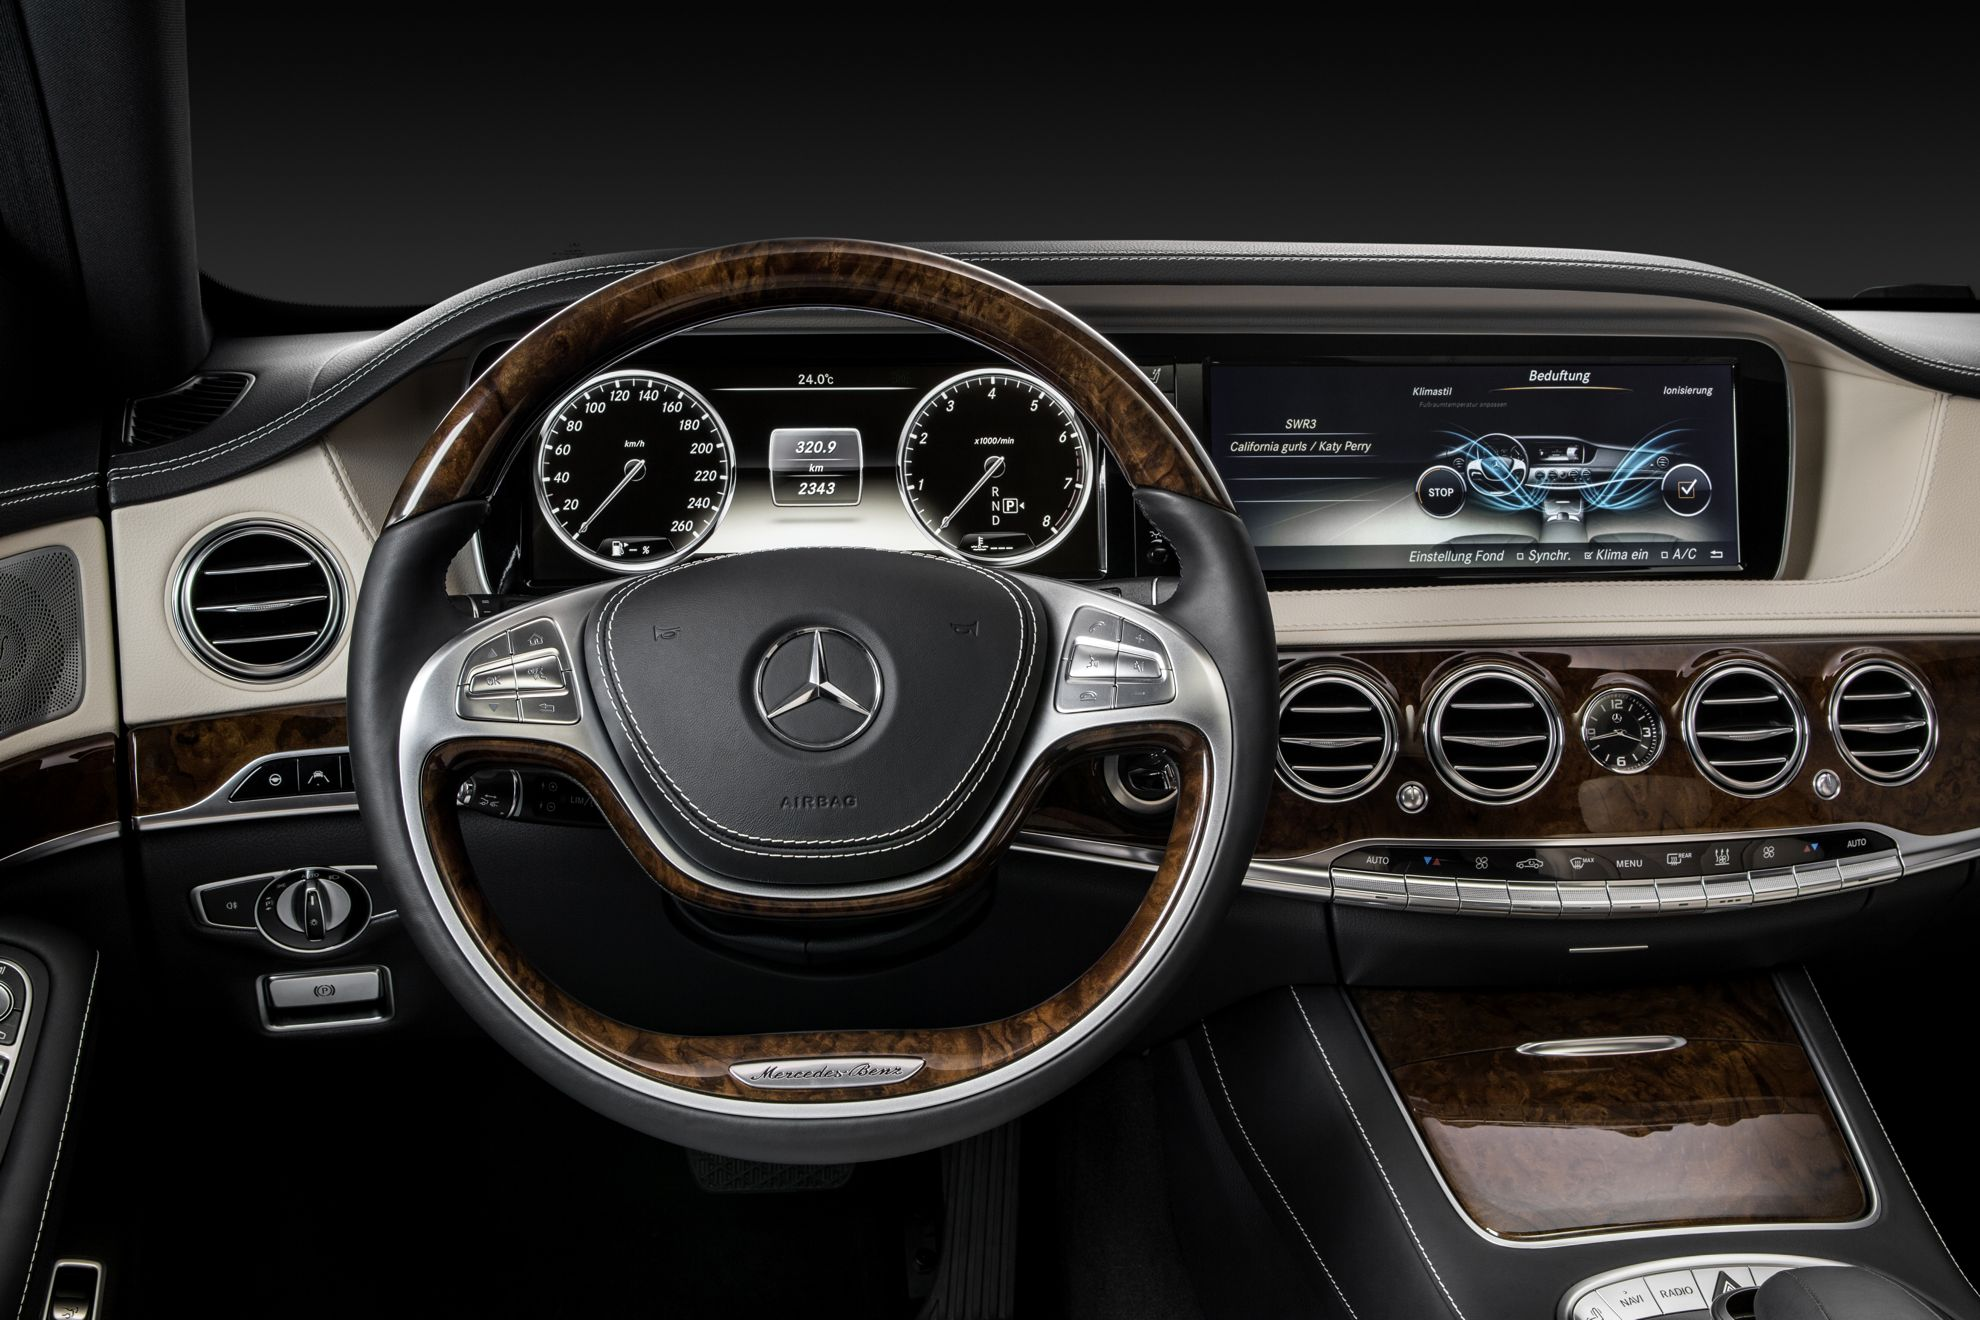 Mercedes-Benz S Class Display